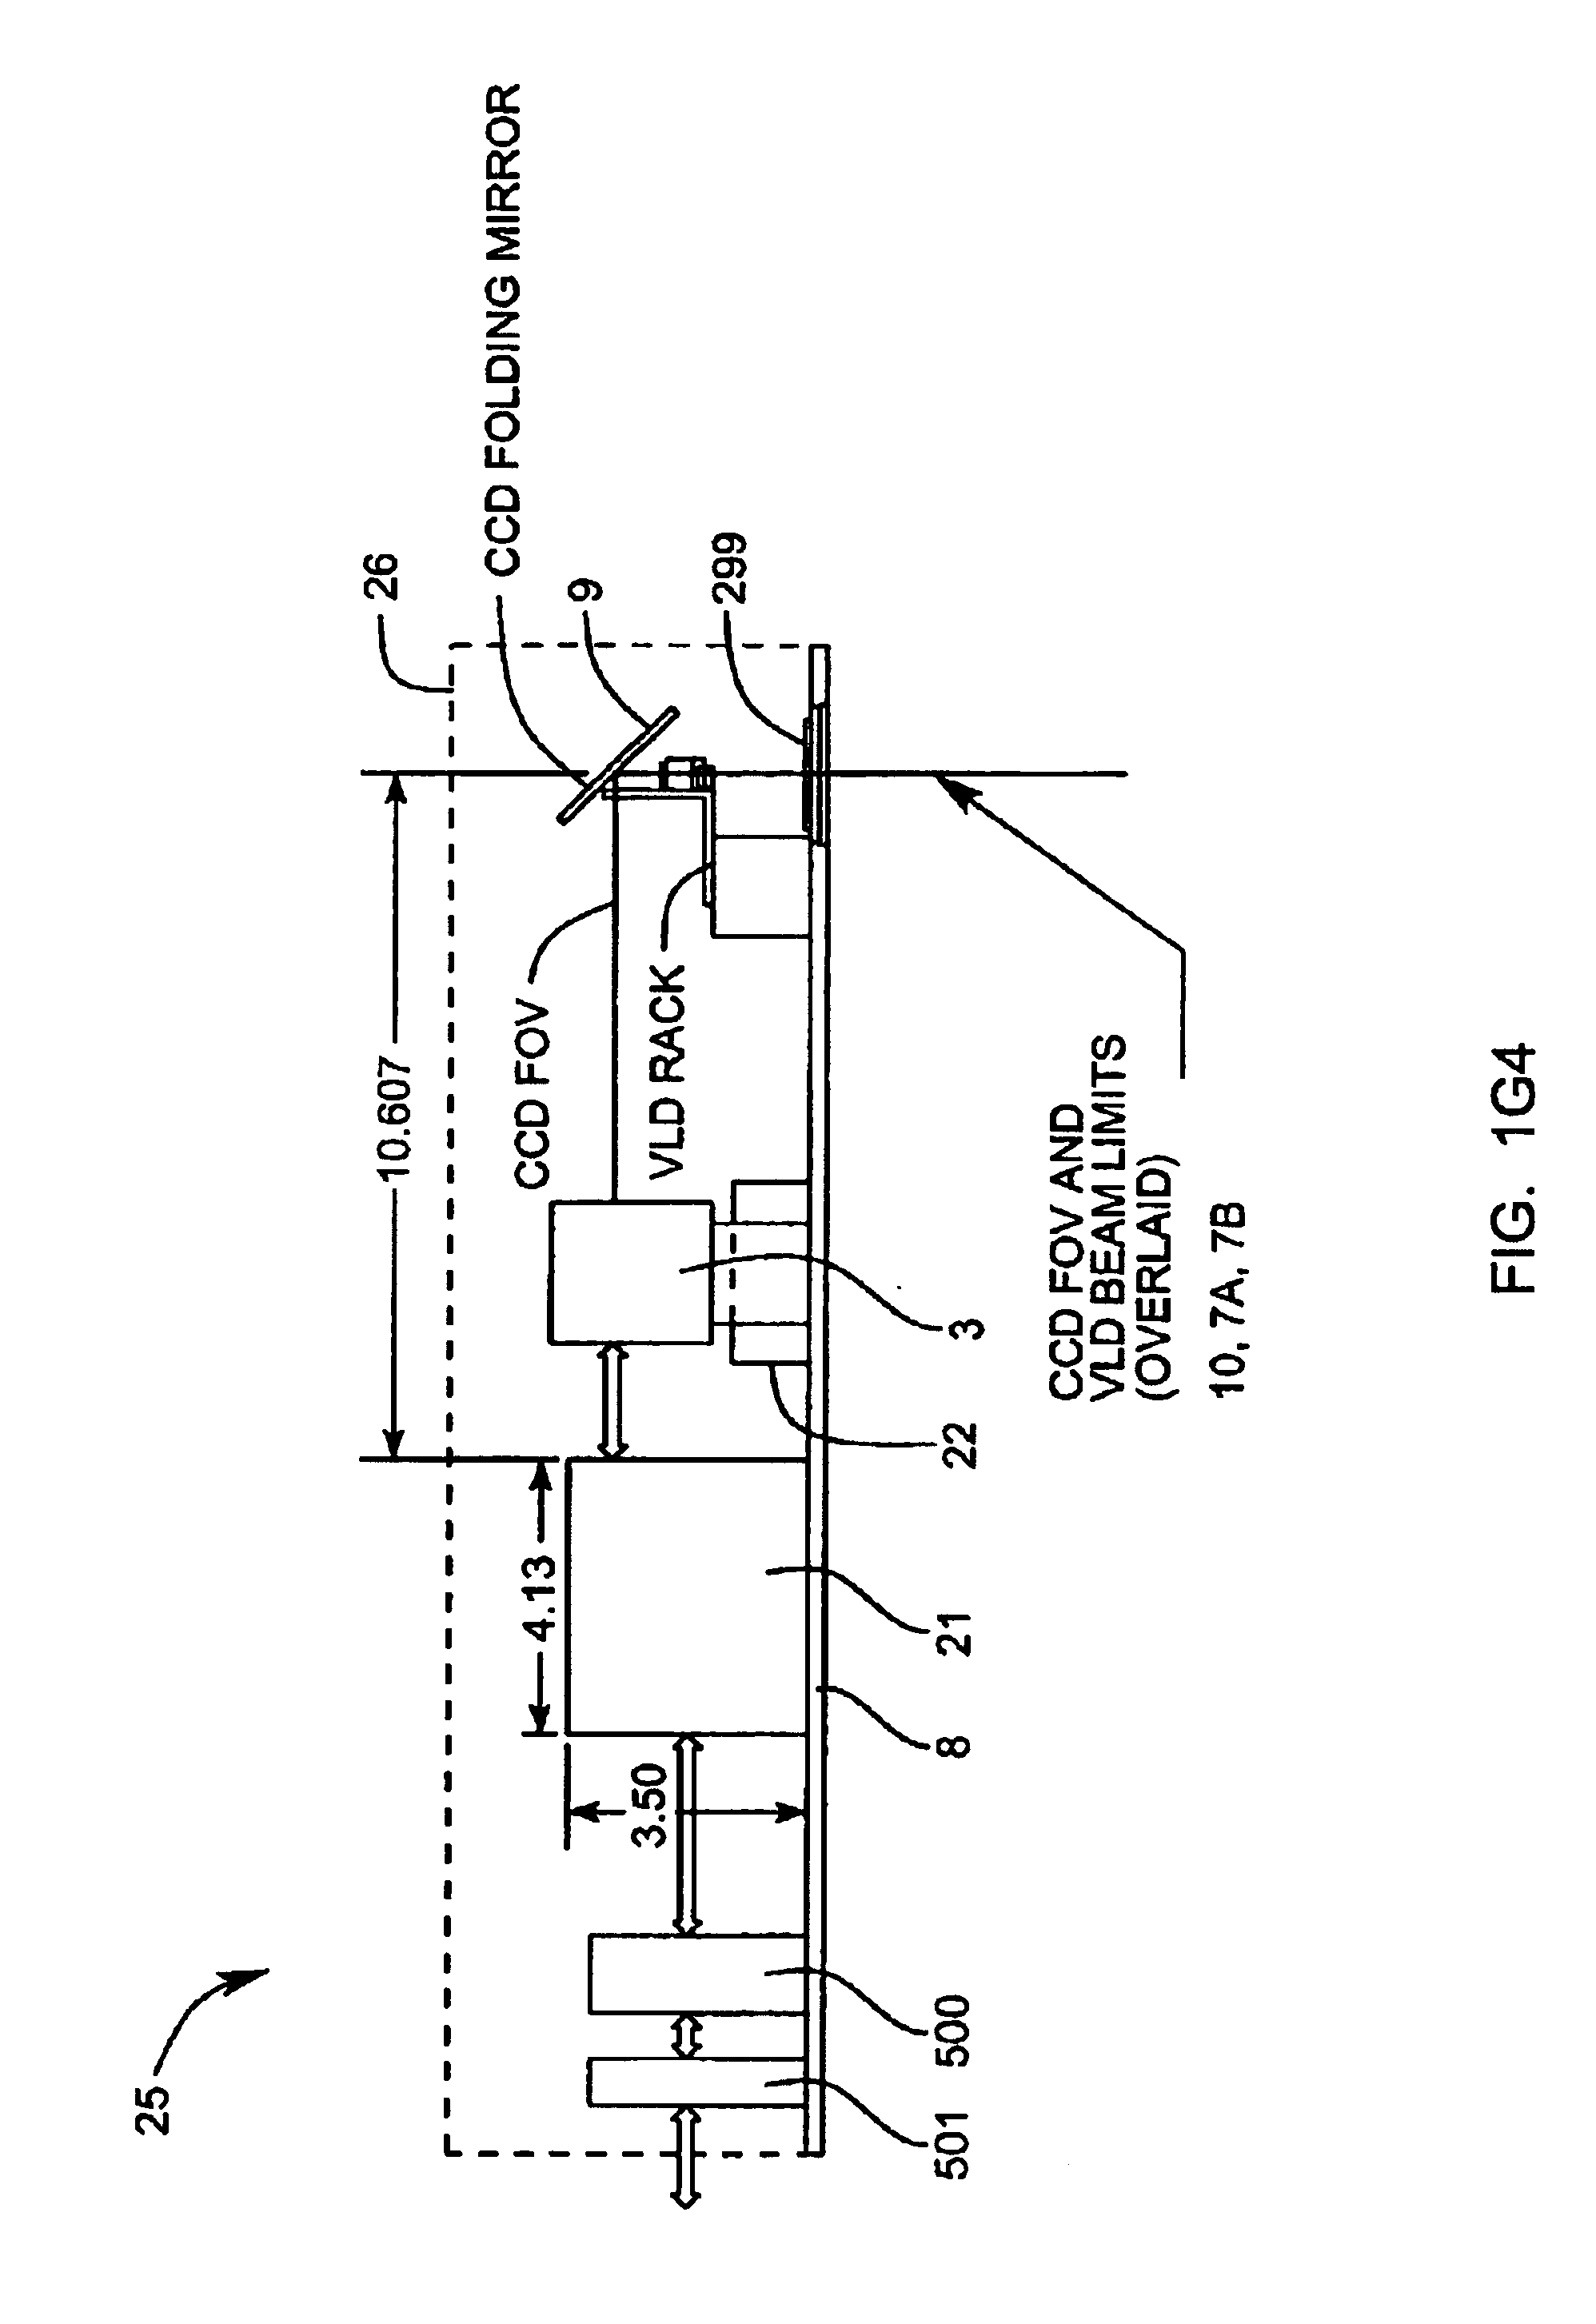 Patent Us 7086594 B2 Diagram Besides International 424 Tractor Manual On Ih Wiring Images